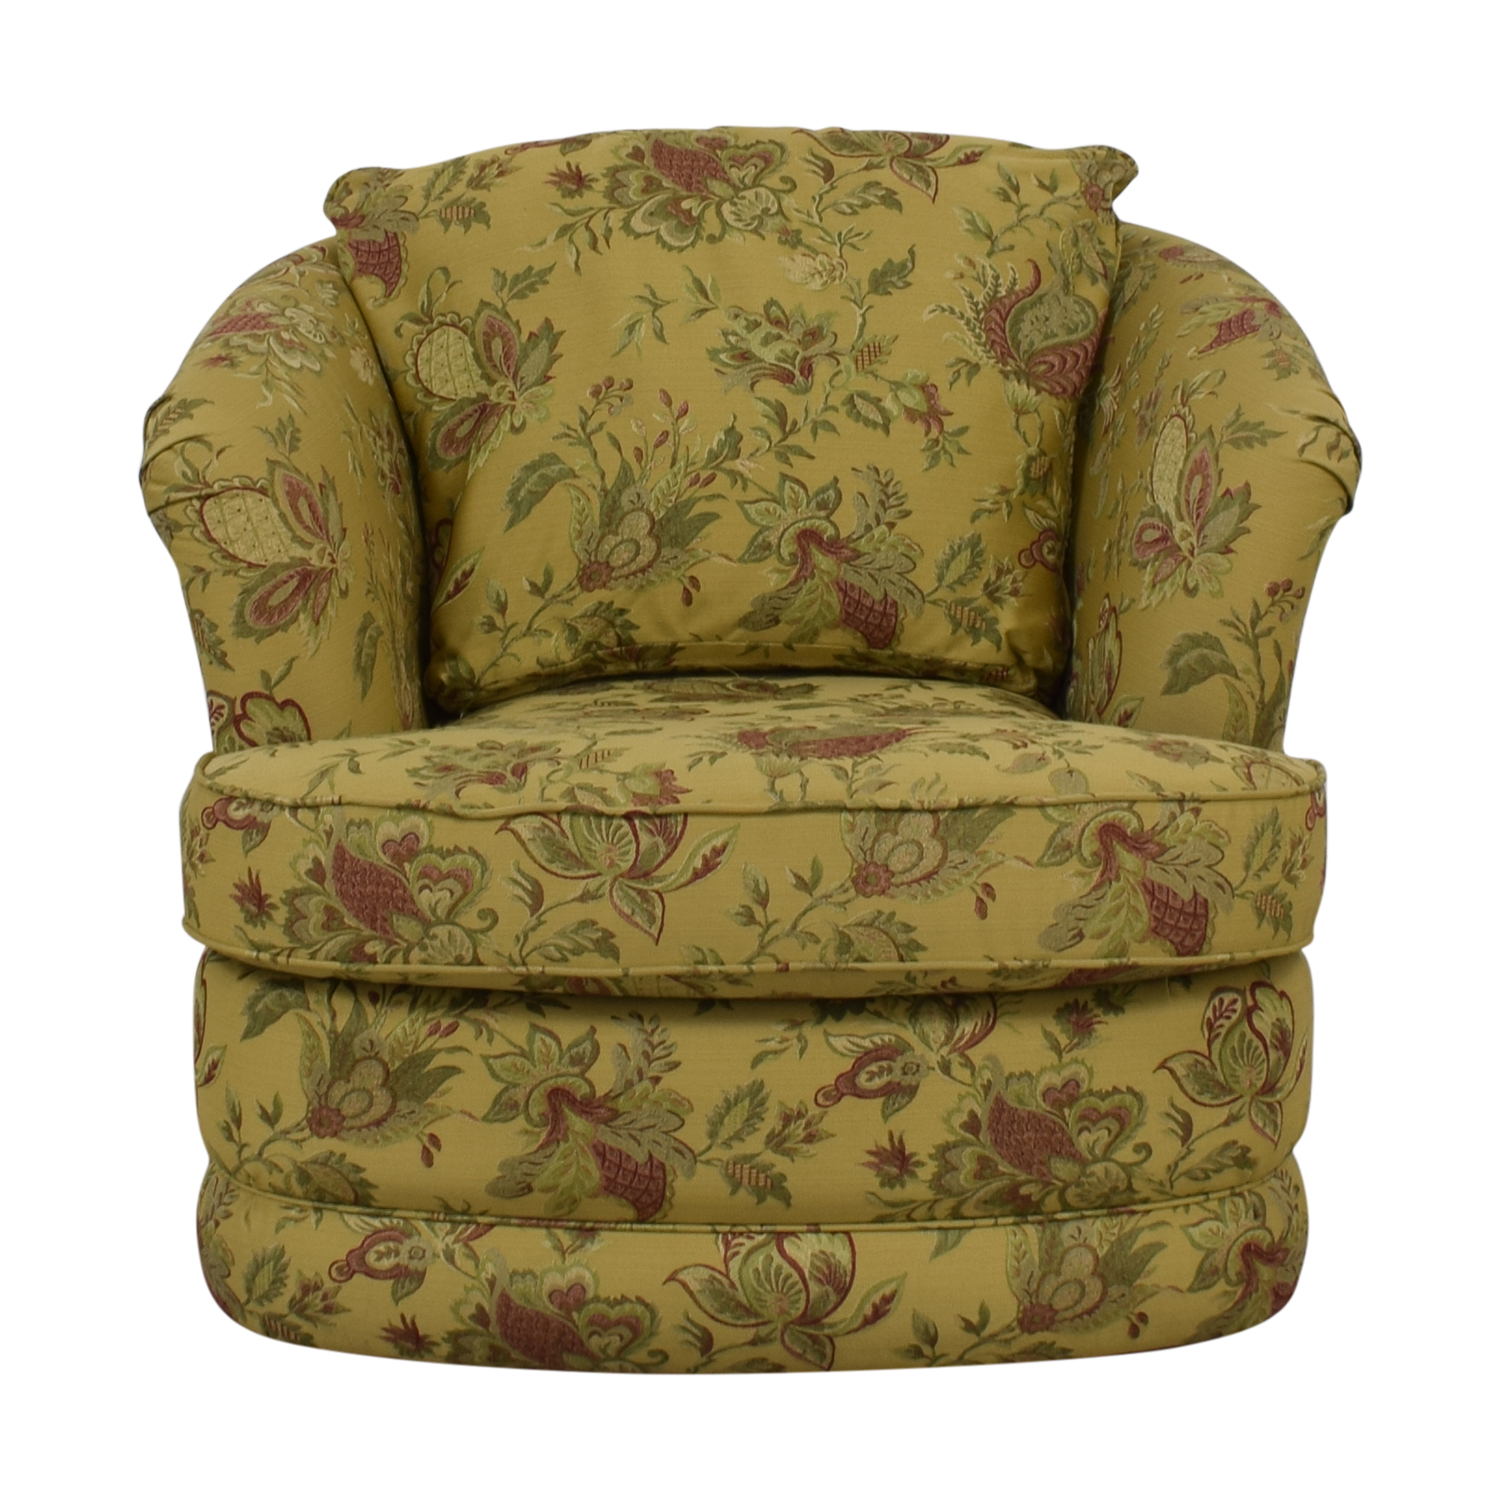 La-Z-Boy Fresco Premier Swivel Floral Accent Chair / Chairs